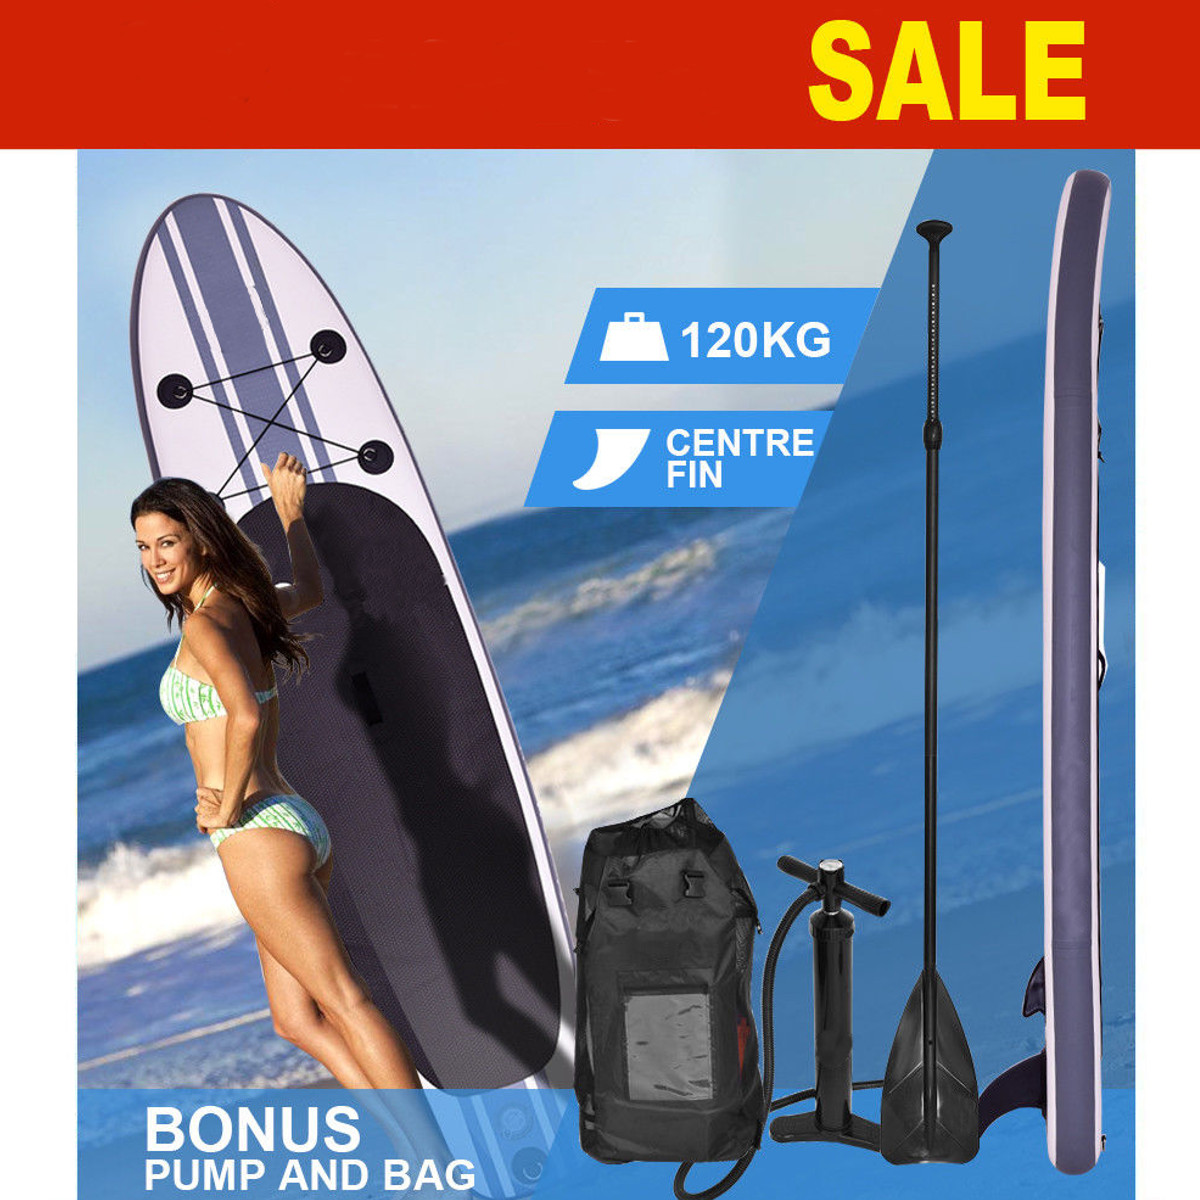 Gofun 335 76*15 cm Stand Up Paddle tabla de surf inflable SUP Set Wave Rider + bomba inflable surf Board paddle boat